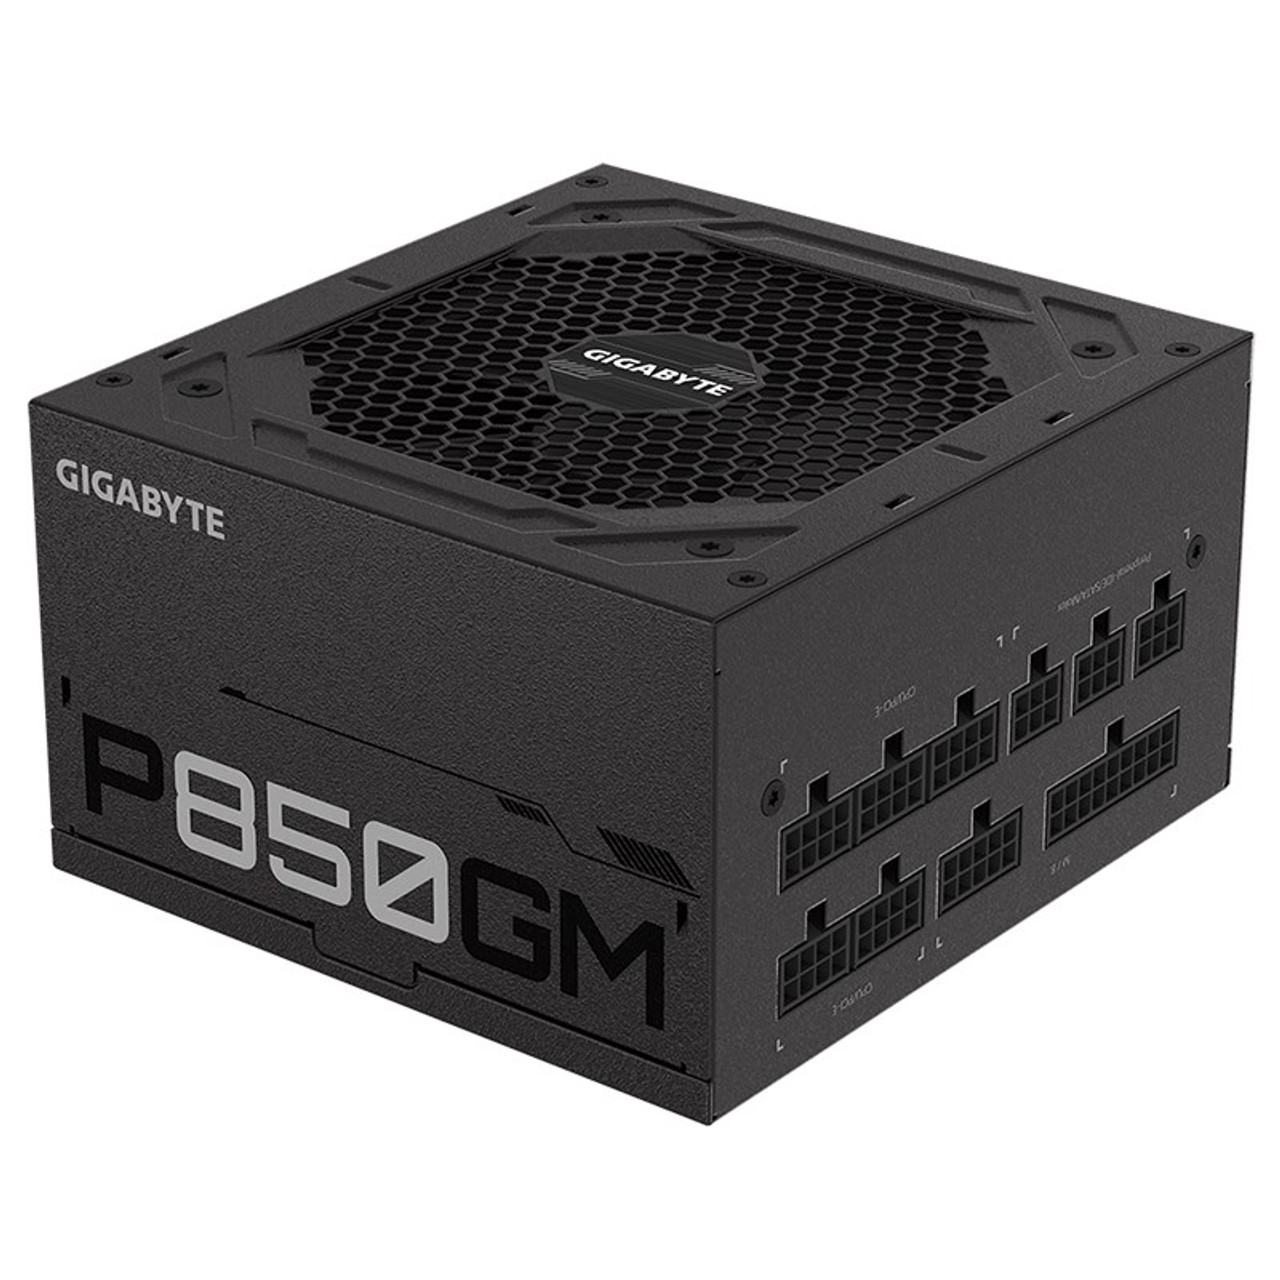 Image for Gigabyte GP-P850GM 850W 80+ Gold Fully Modular Power Supply CX Computer Superstore